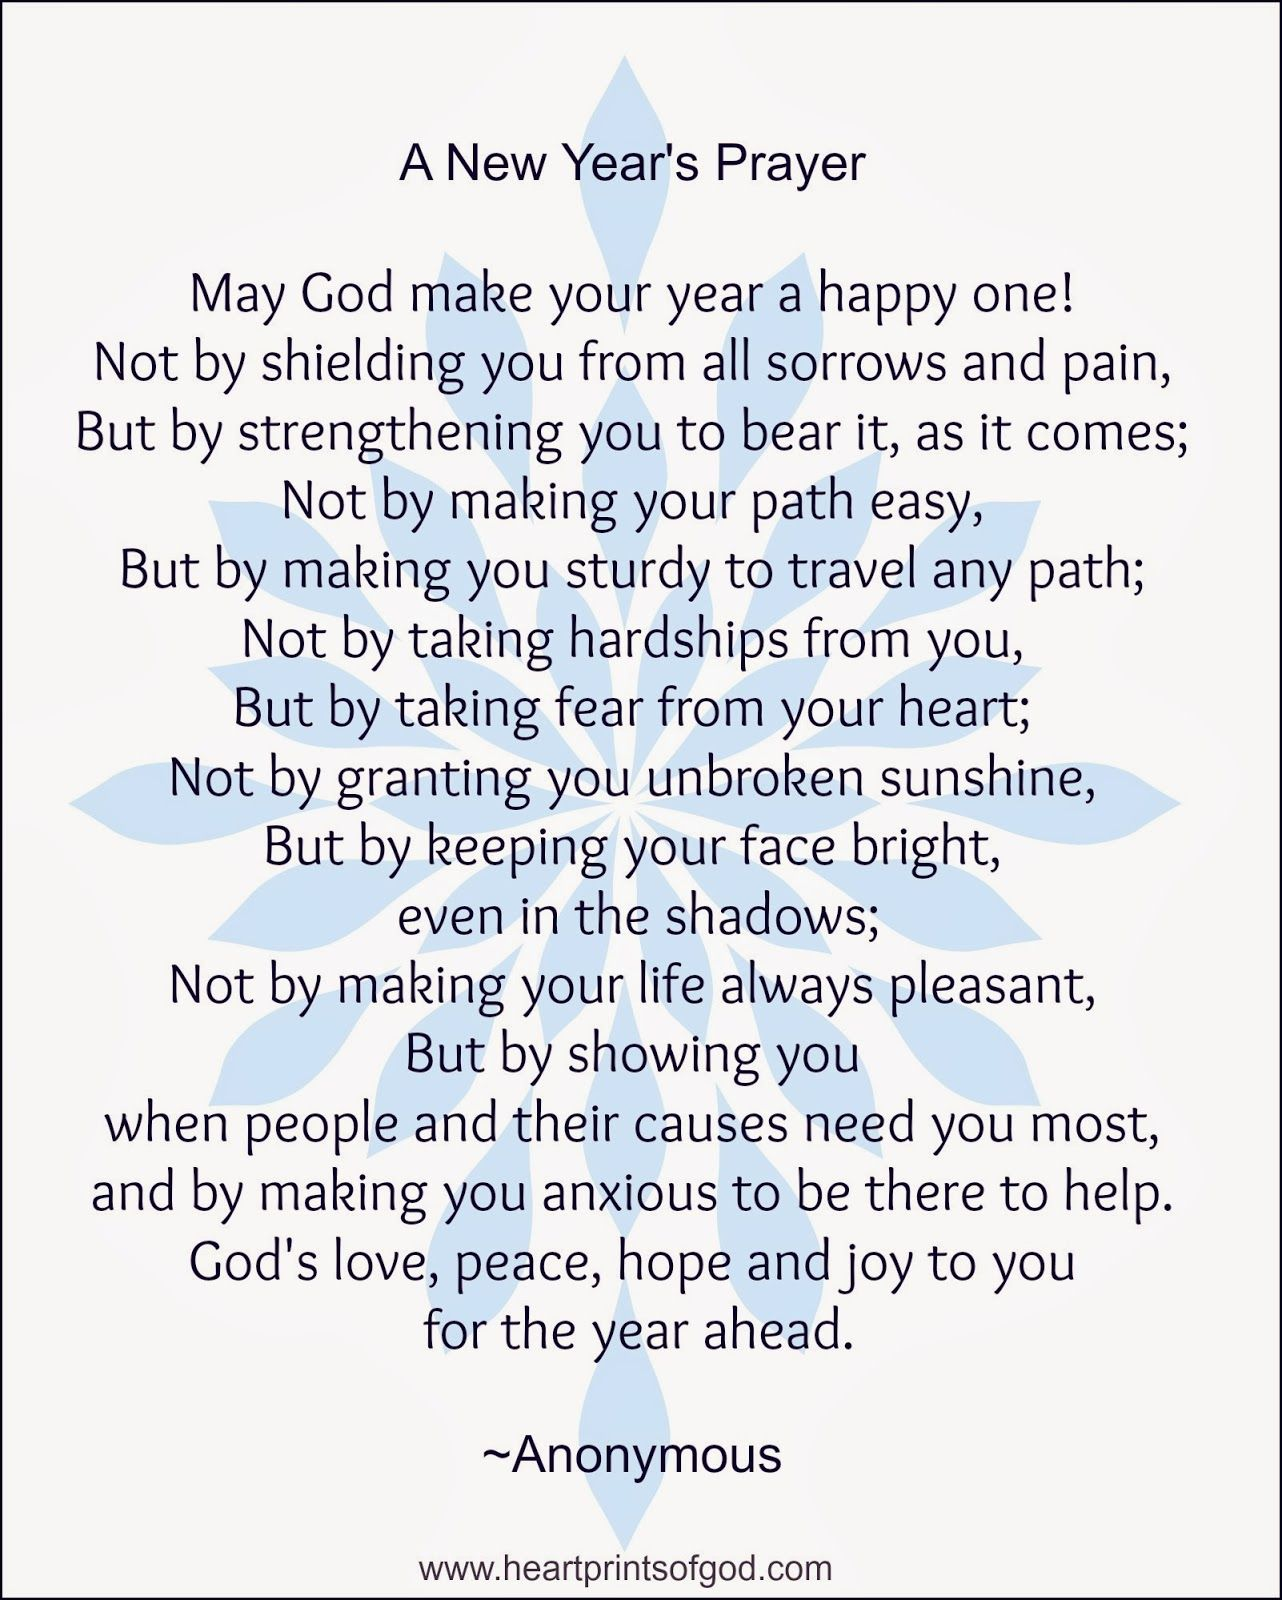 heartprints of god a new years prayer